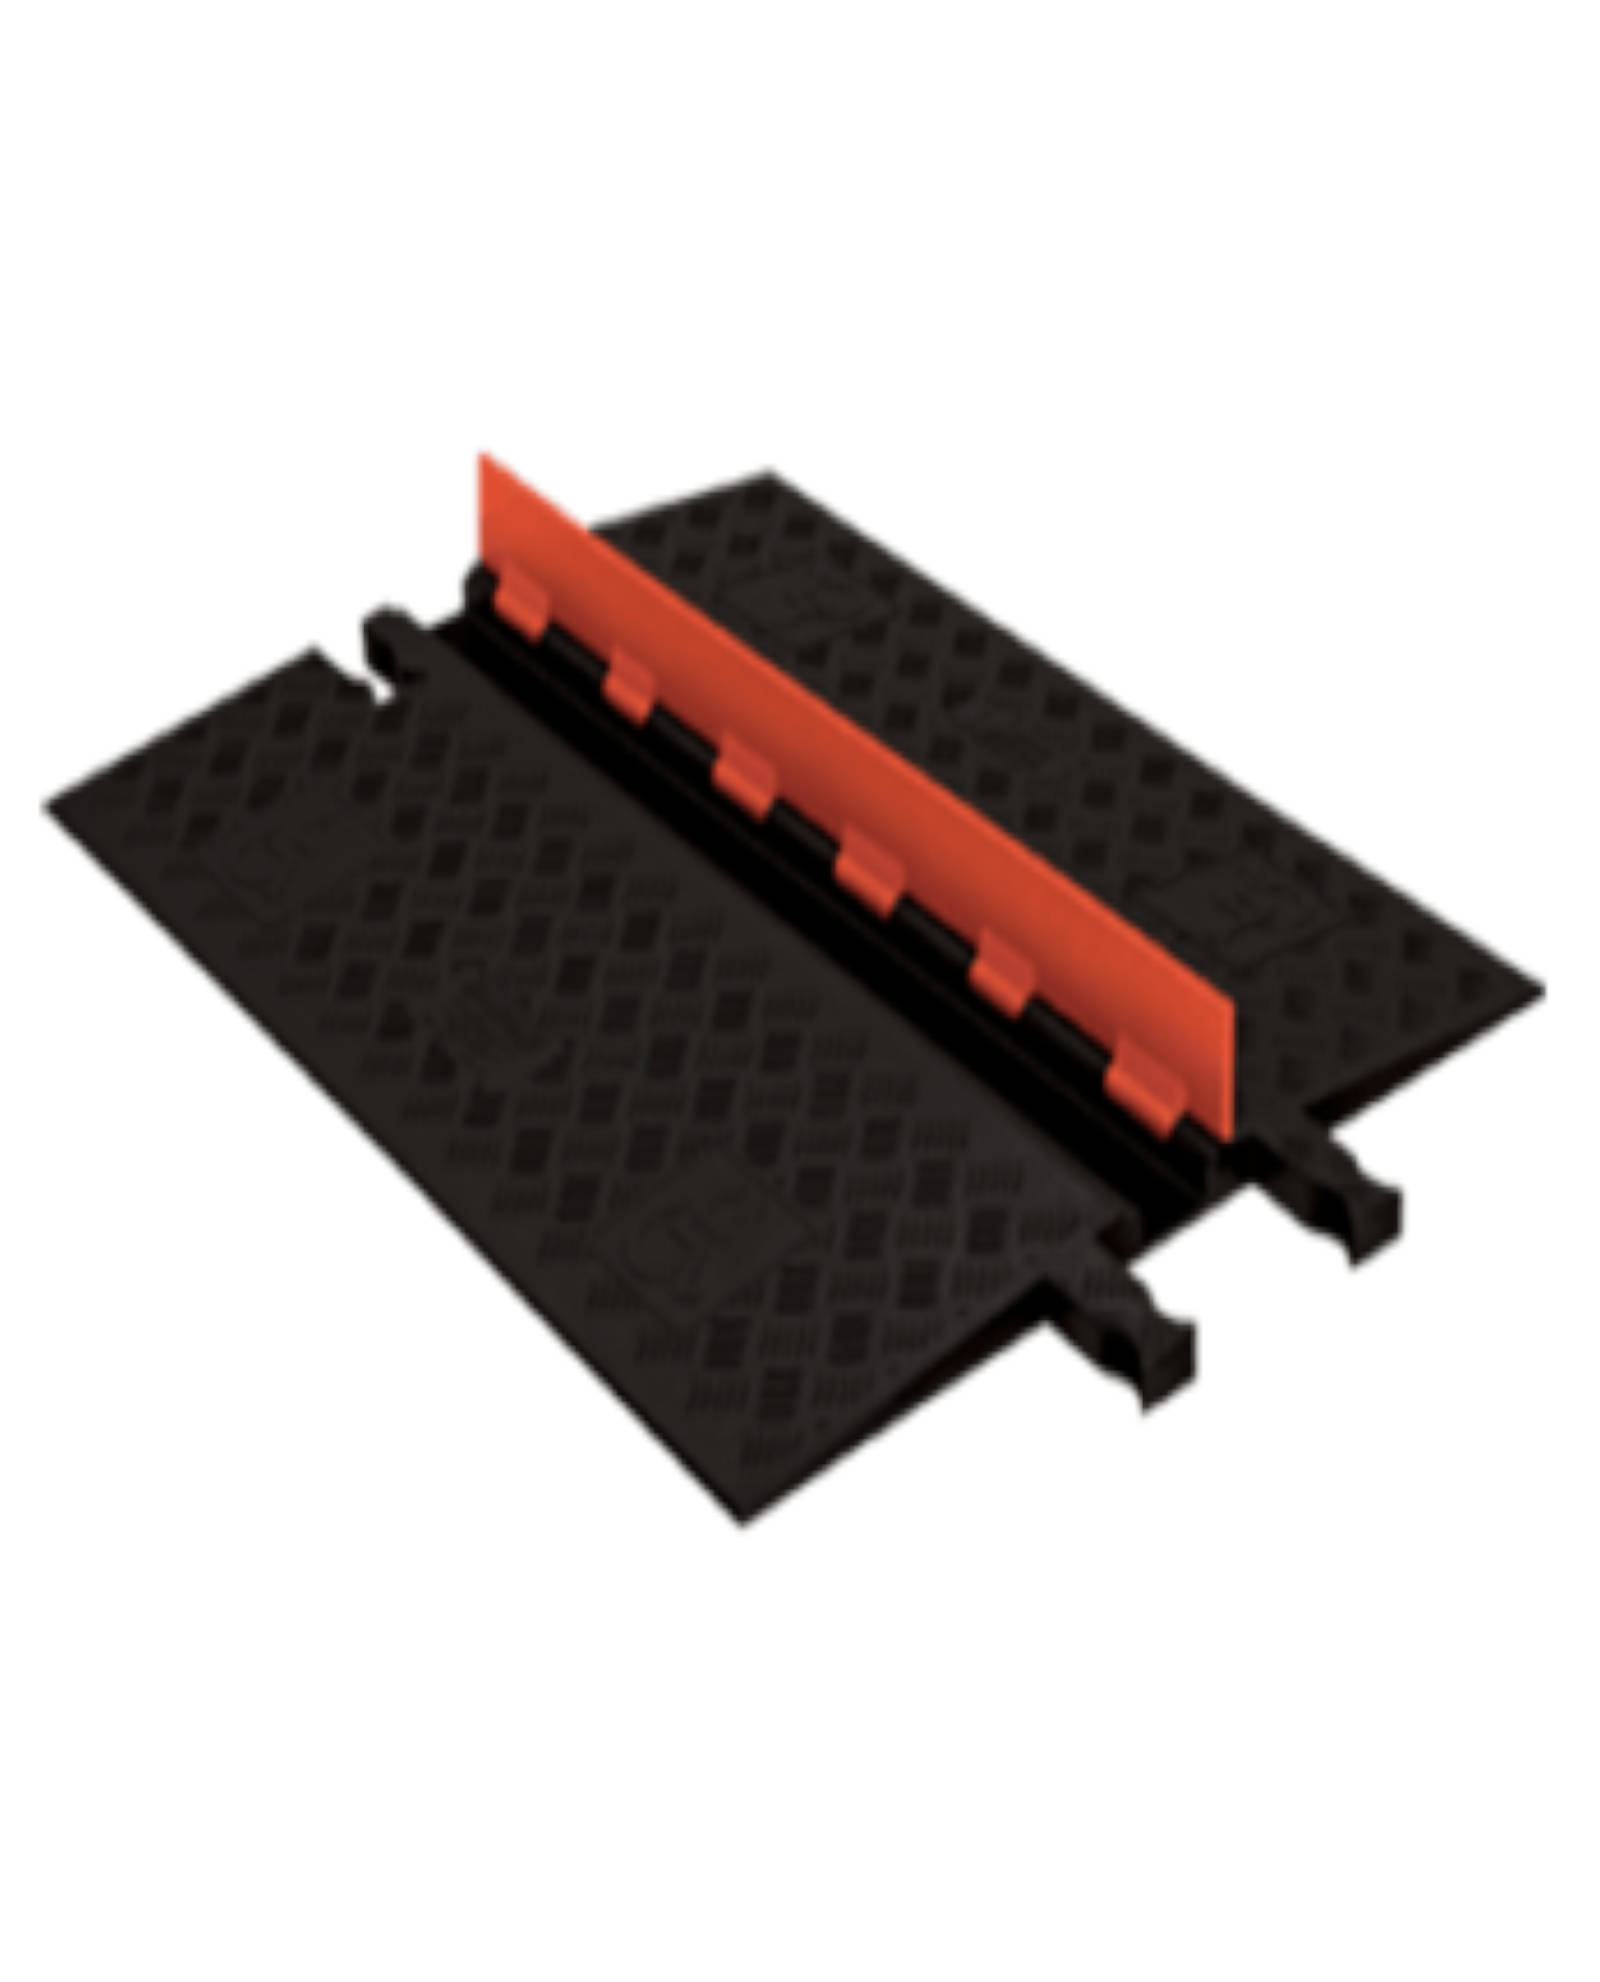 Checkers Gd1x75